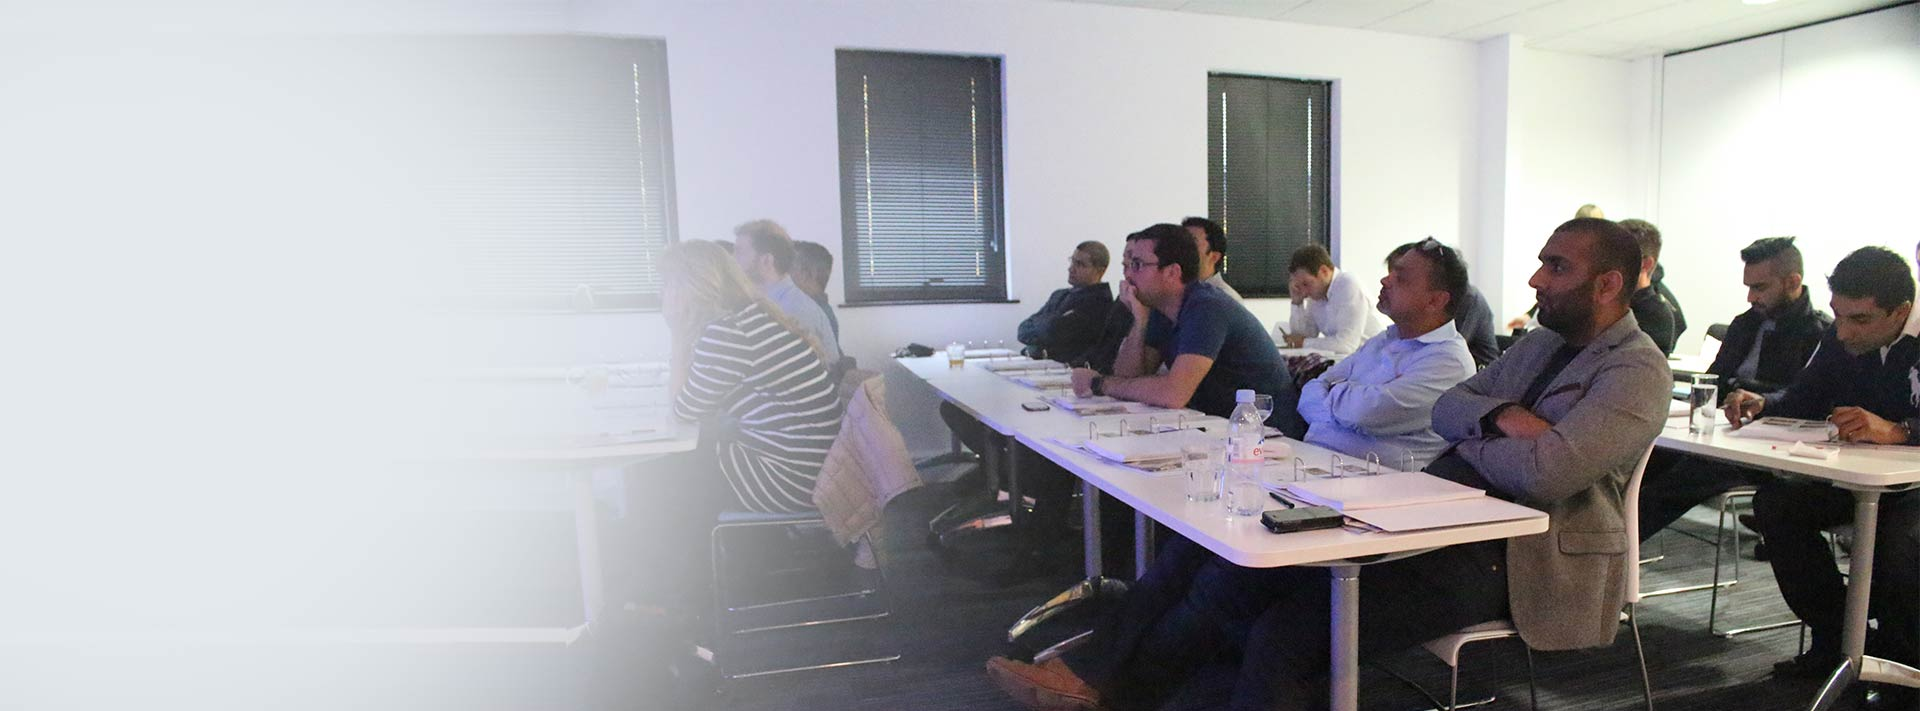 Sinus and Bone Augmentation Hands-on Cadaver Course (London) 2-4 July 2020